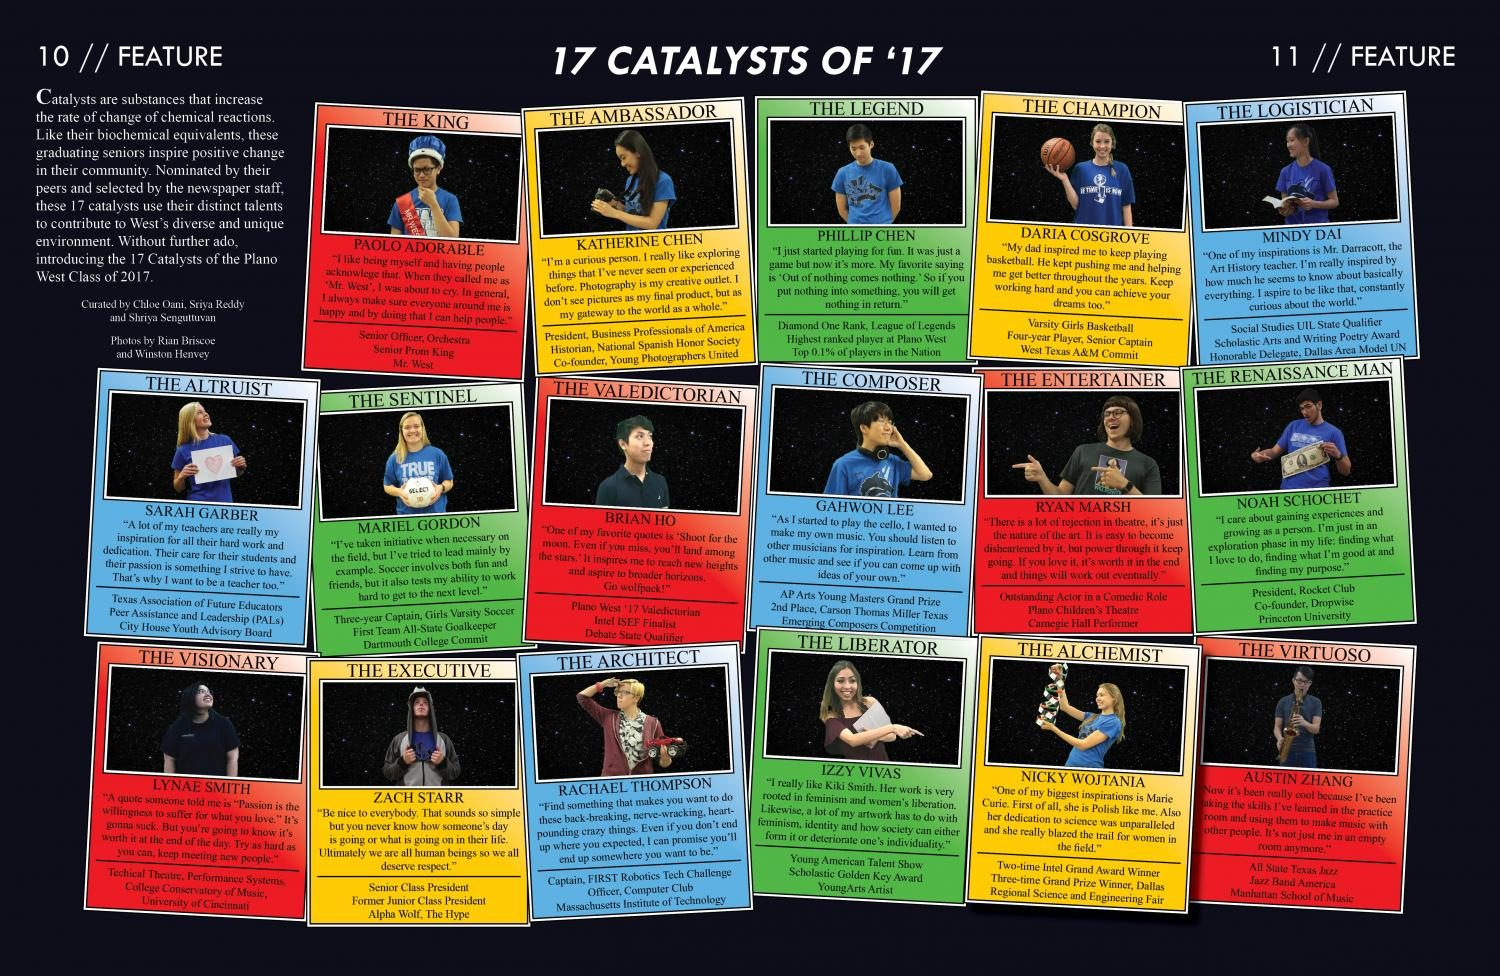 17 Catalysts of